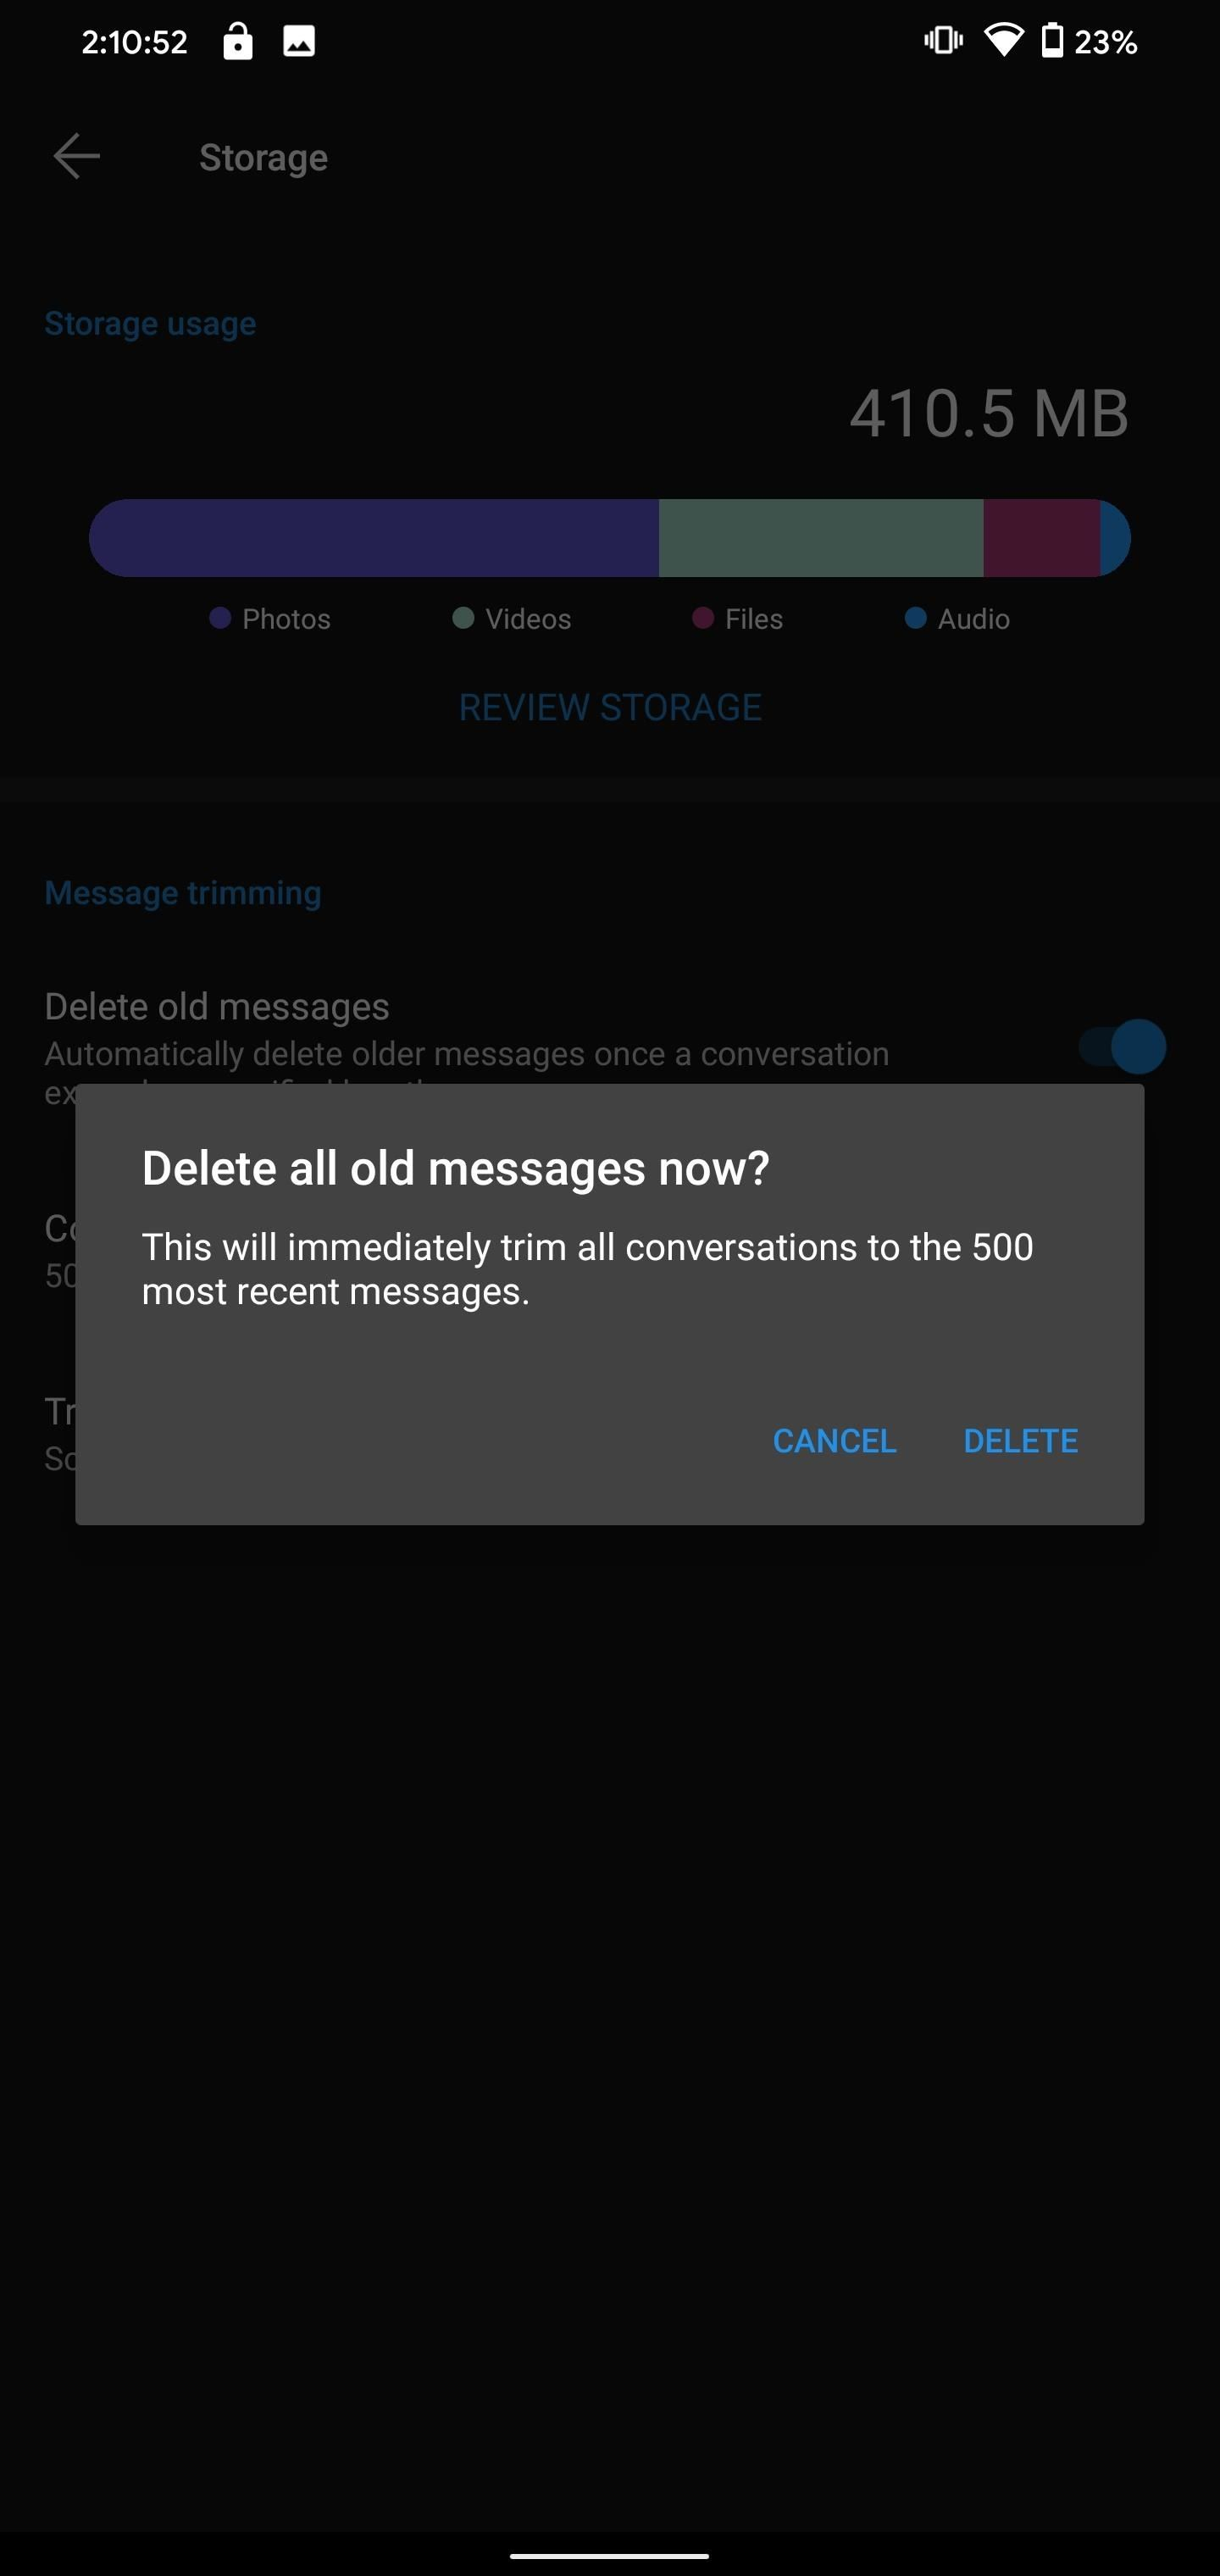 How to Automatically Delete Signal Messages to Save Storage Space